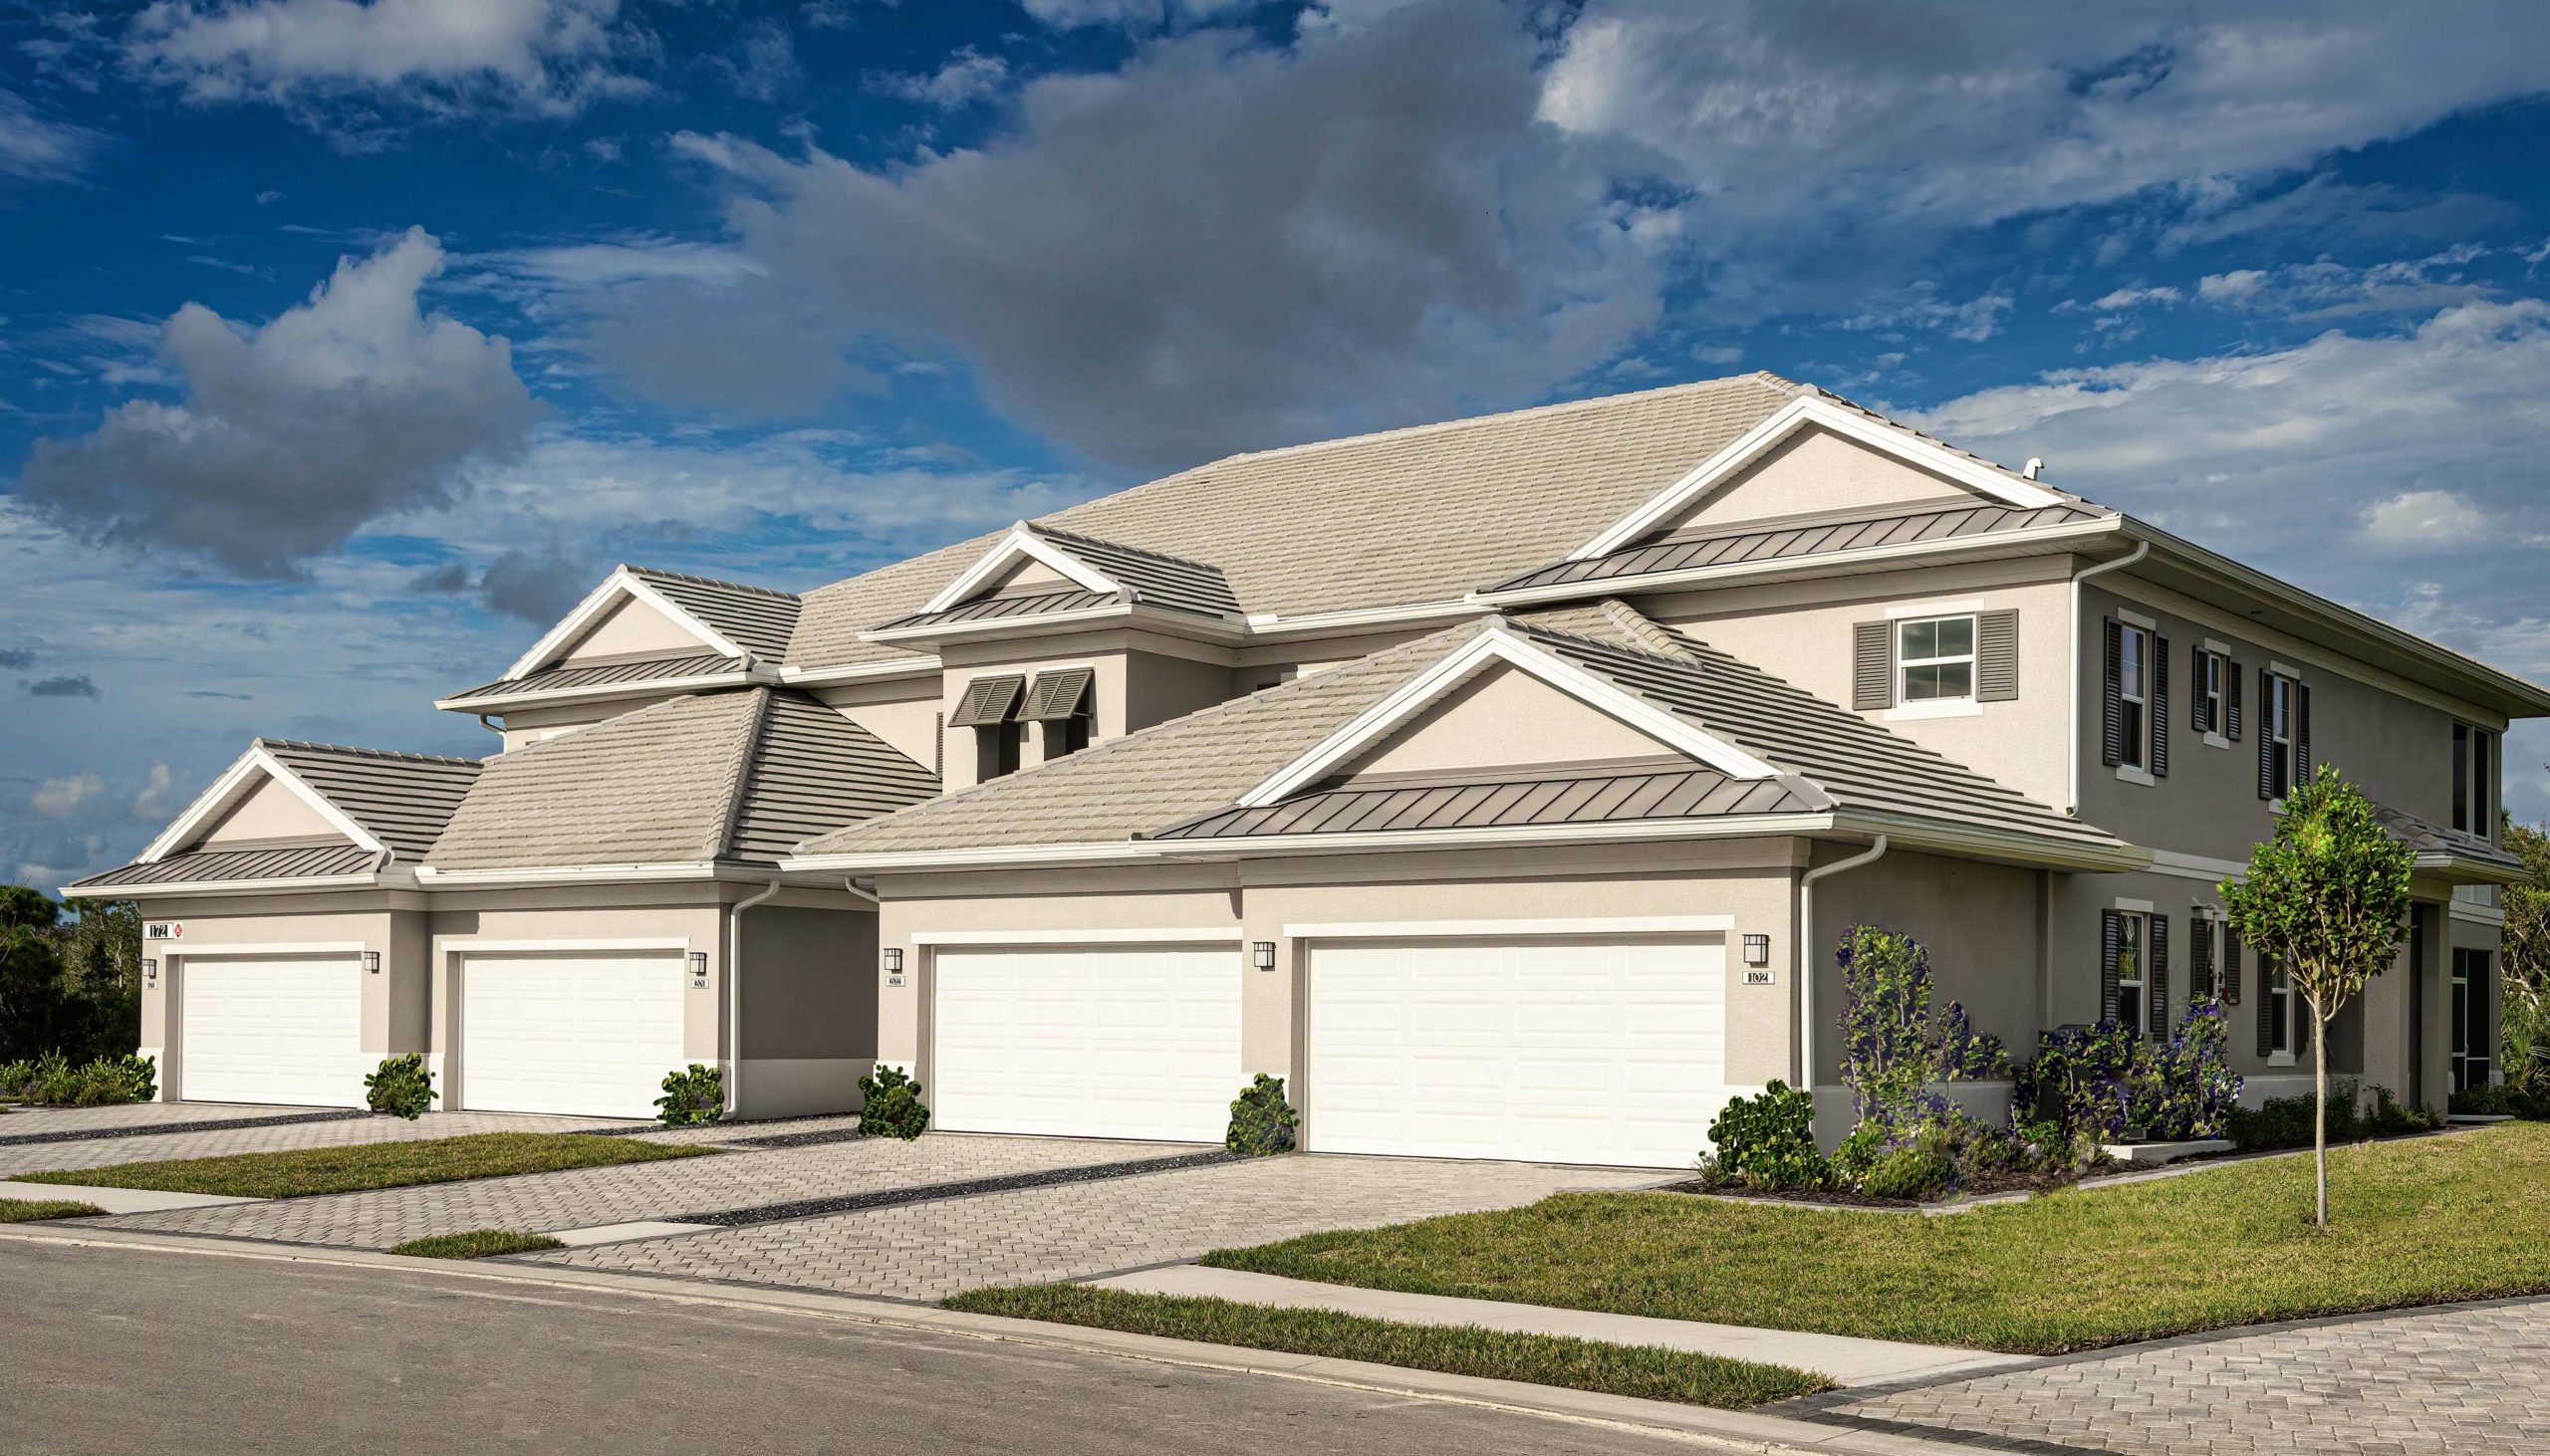 Grand Coach Homes | Antilles of Naples, Florida - West Indies Styled Residential Resort